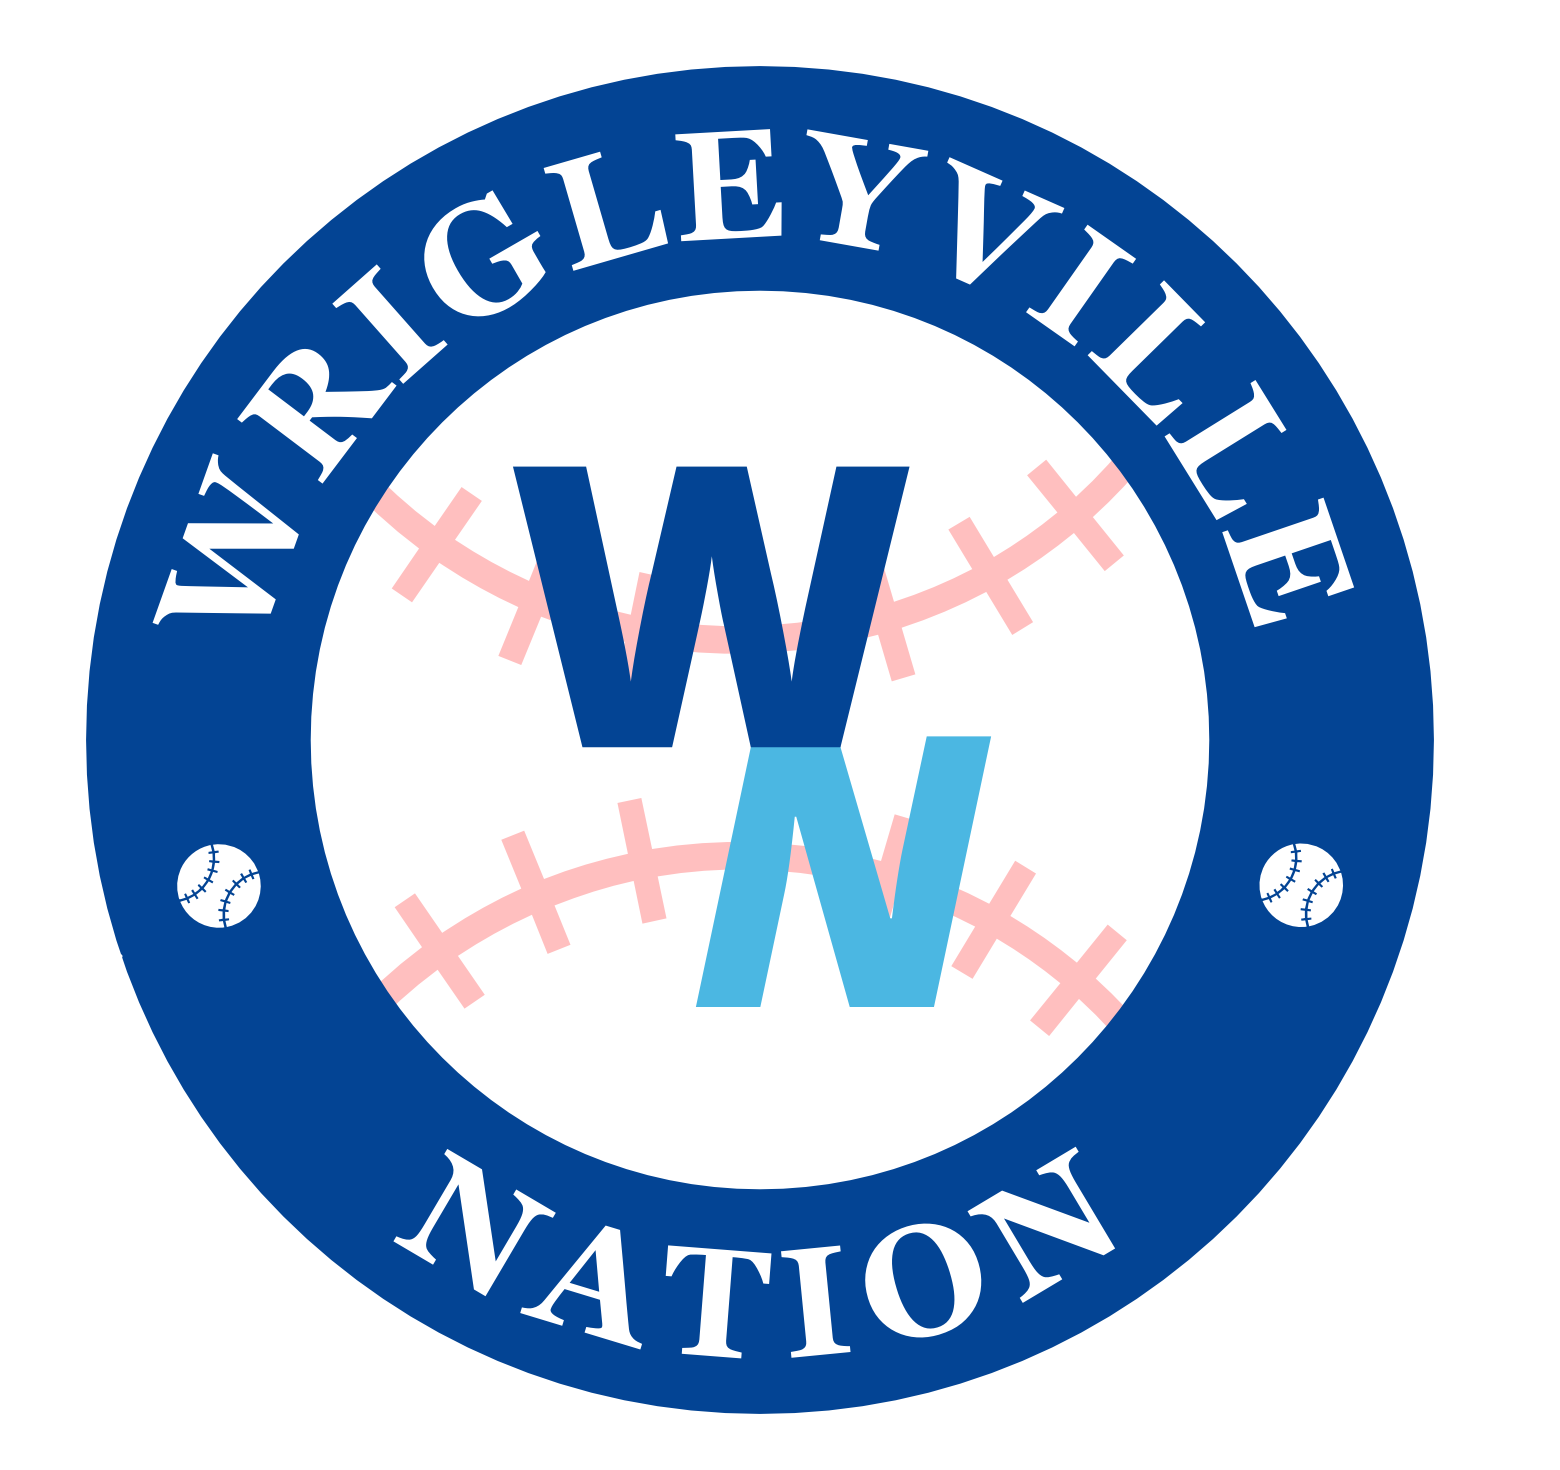 Wrigleyville Nation Ep 209 - Guest: Michael Cerami, Cubs Sweep & Swept, Ugly Jerseys, & More show art